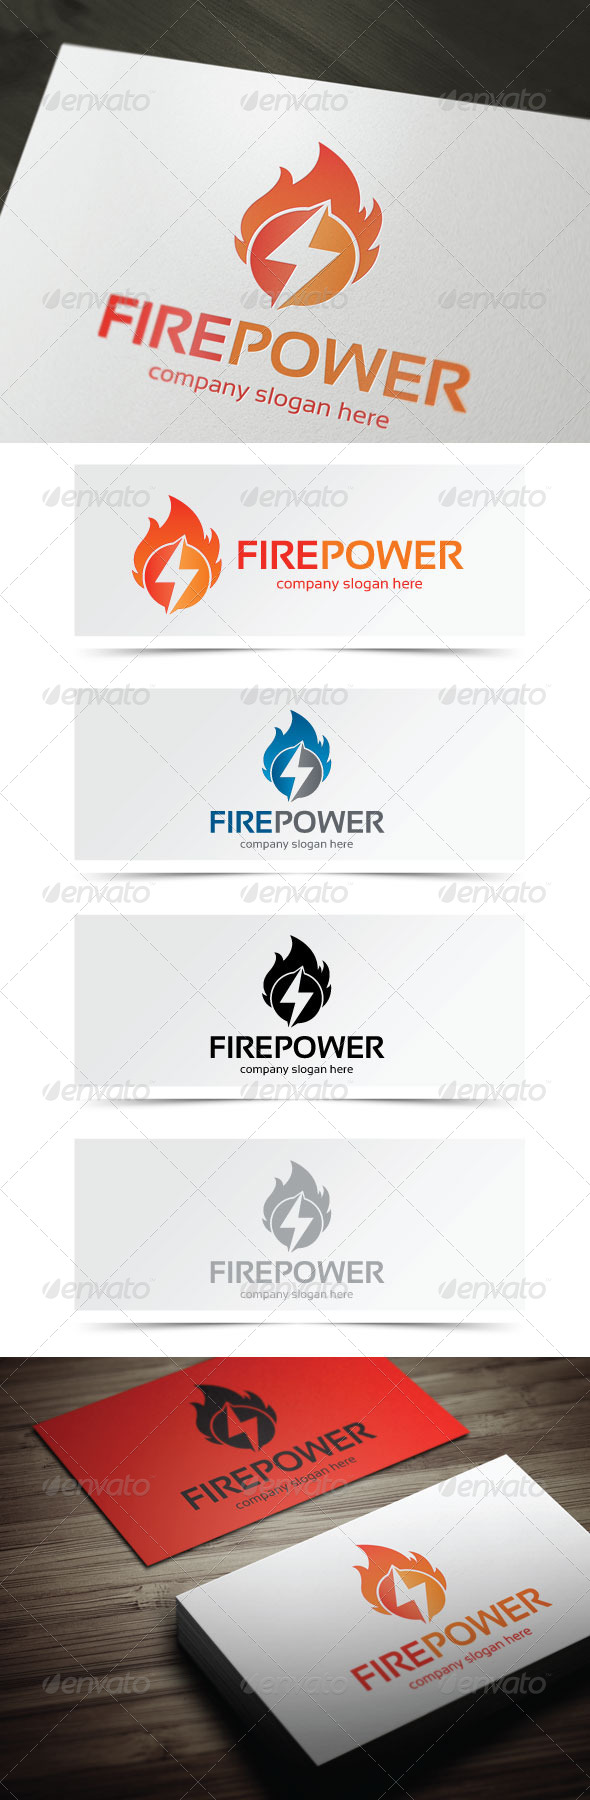 GraphicRiver Fire Power 5375807